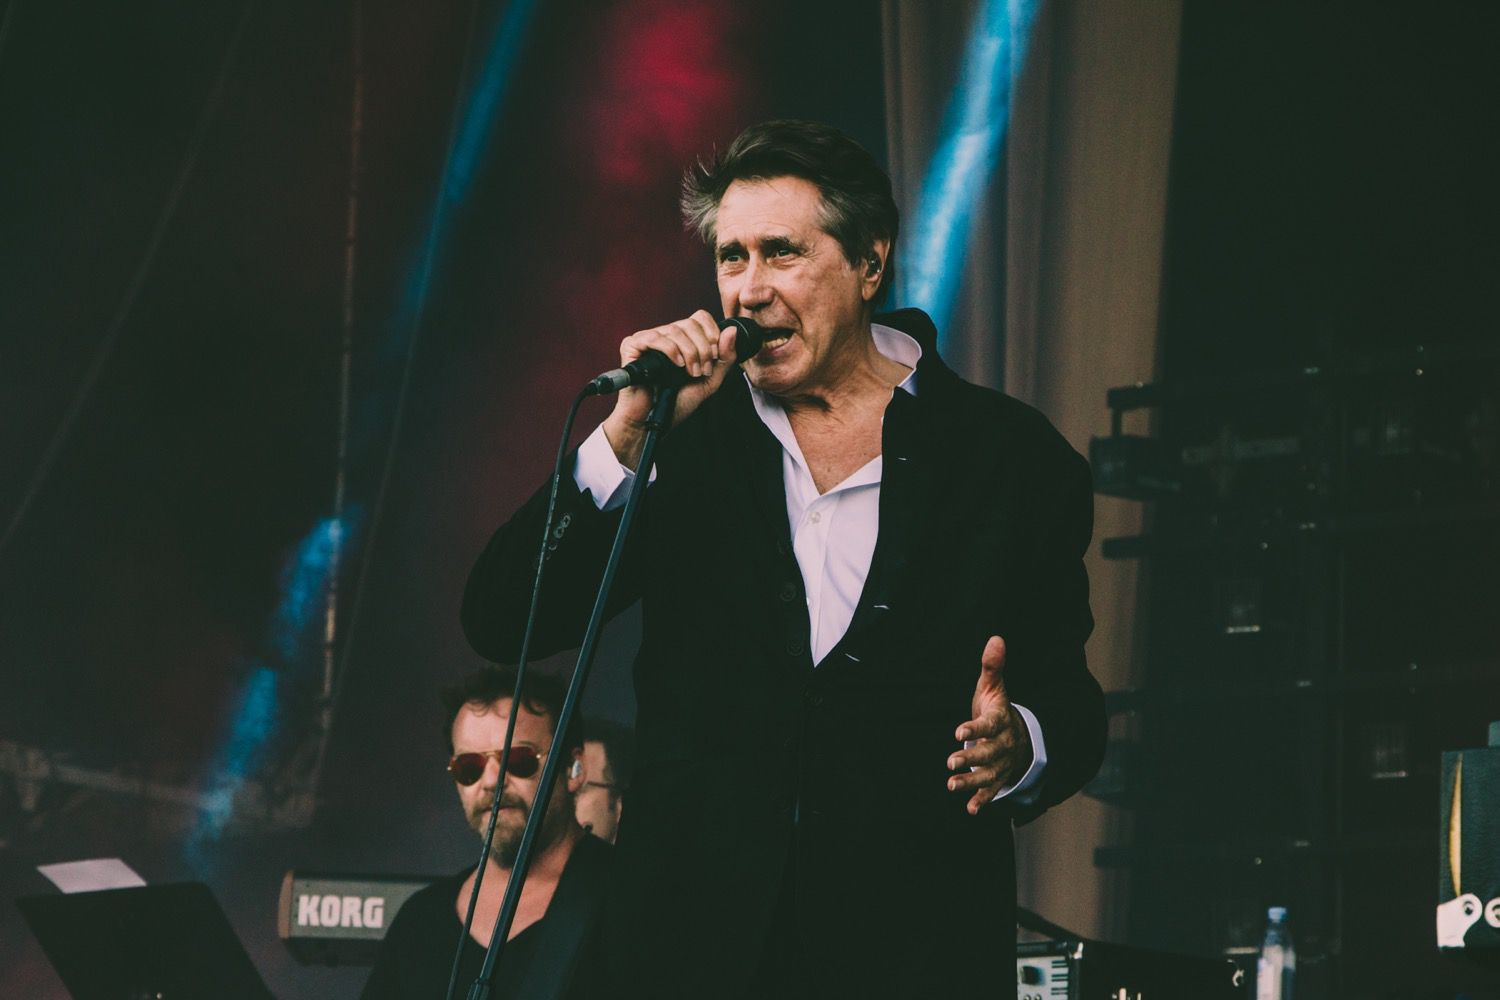 bryan ferry bitter sweet solo album